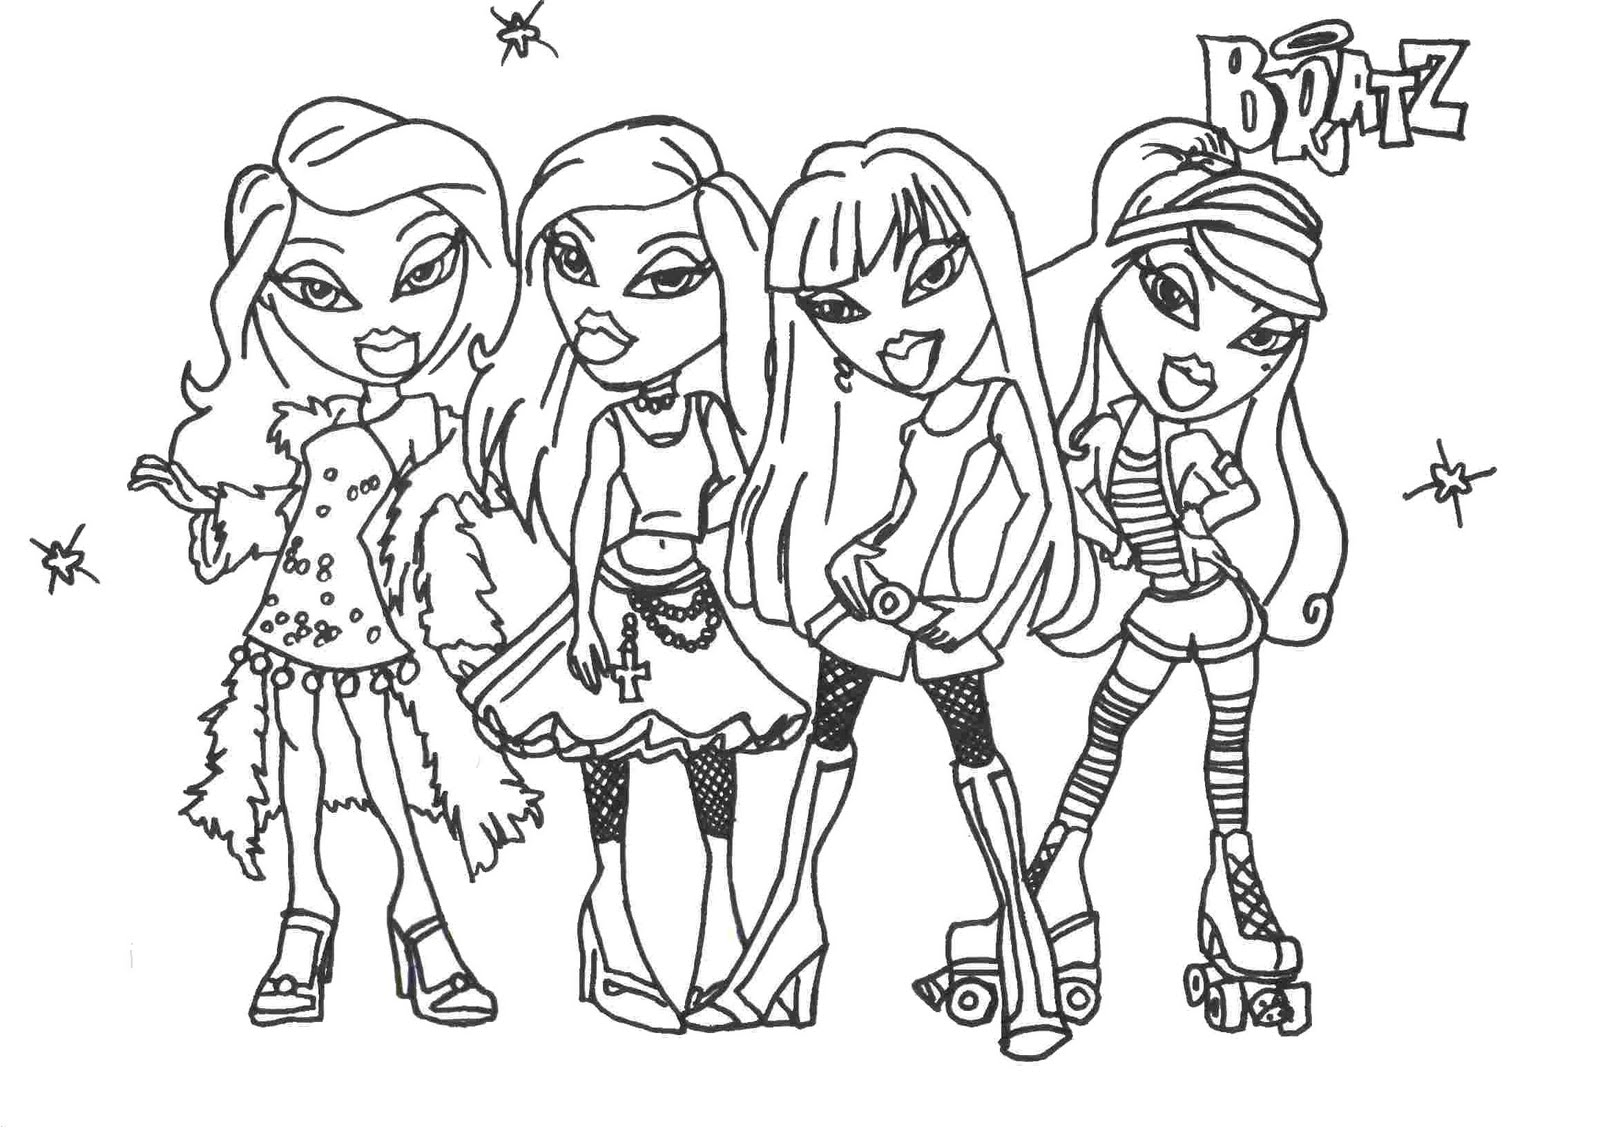 Bratz coloring pages to download